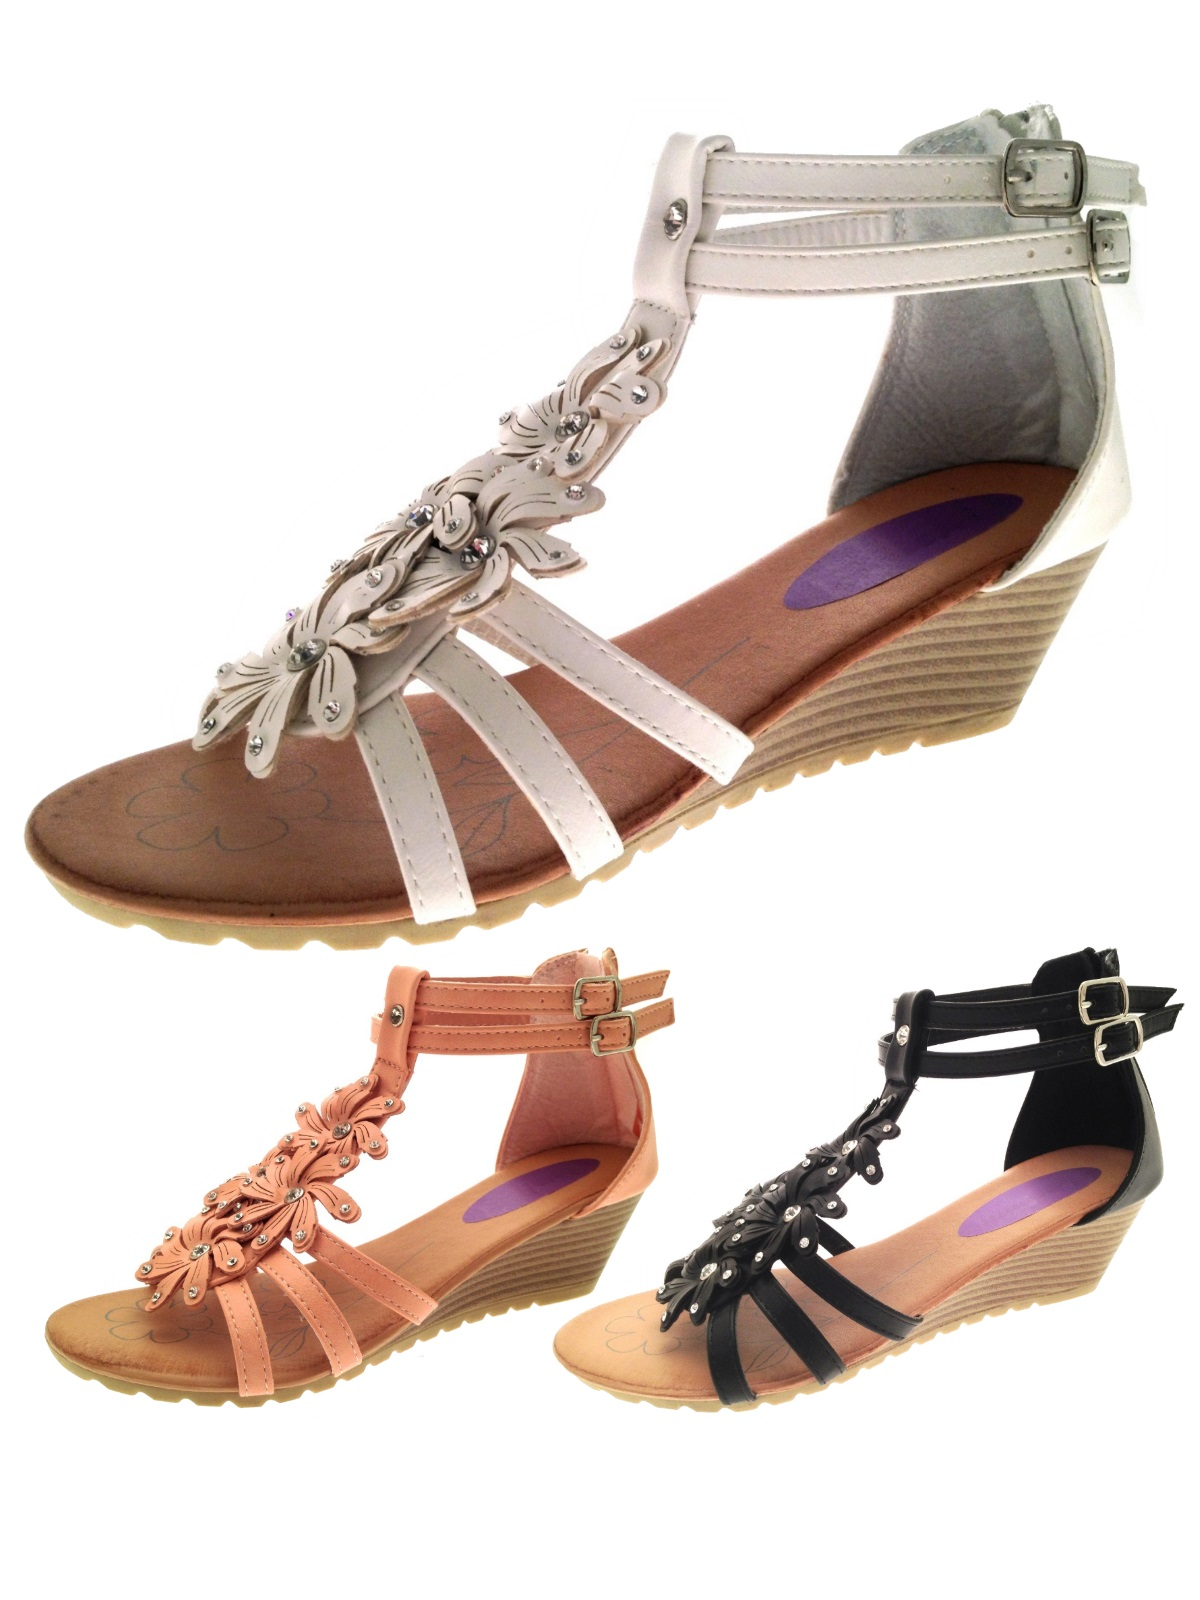 Explore women's sandals and wedges or find sparkly prom shoes at a great price. Make sure he's ready for graduation ceremonies or job interviews with men's dress shoes. Or, help hard-to-fit feet feel comfortable in wide and extra wide width shoes from Kohl's.